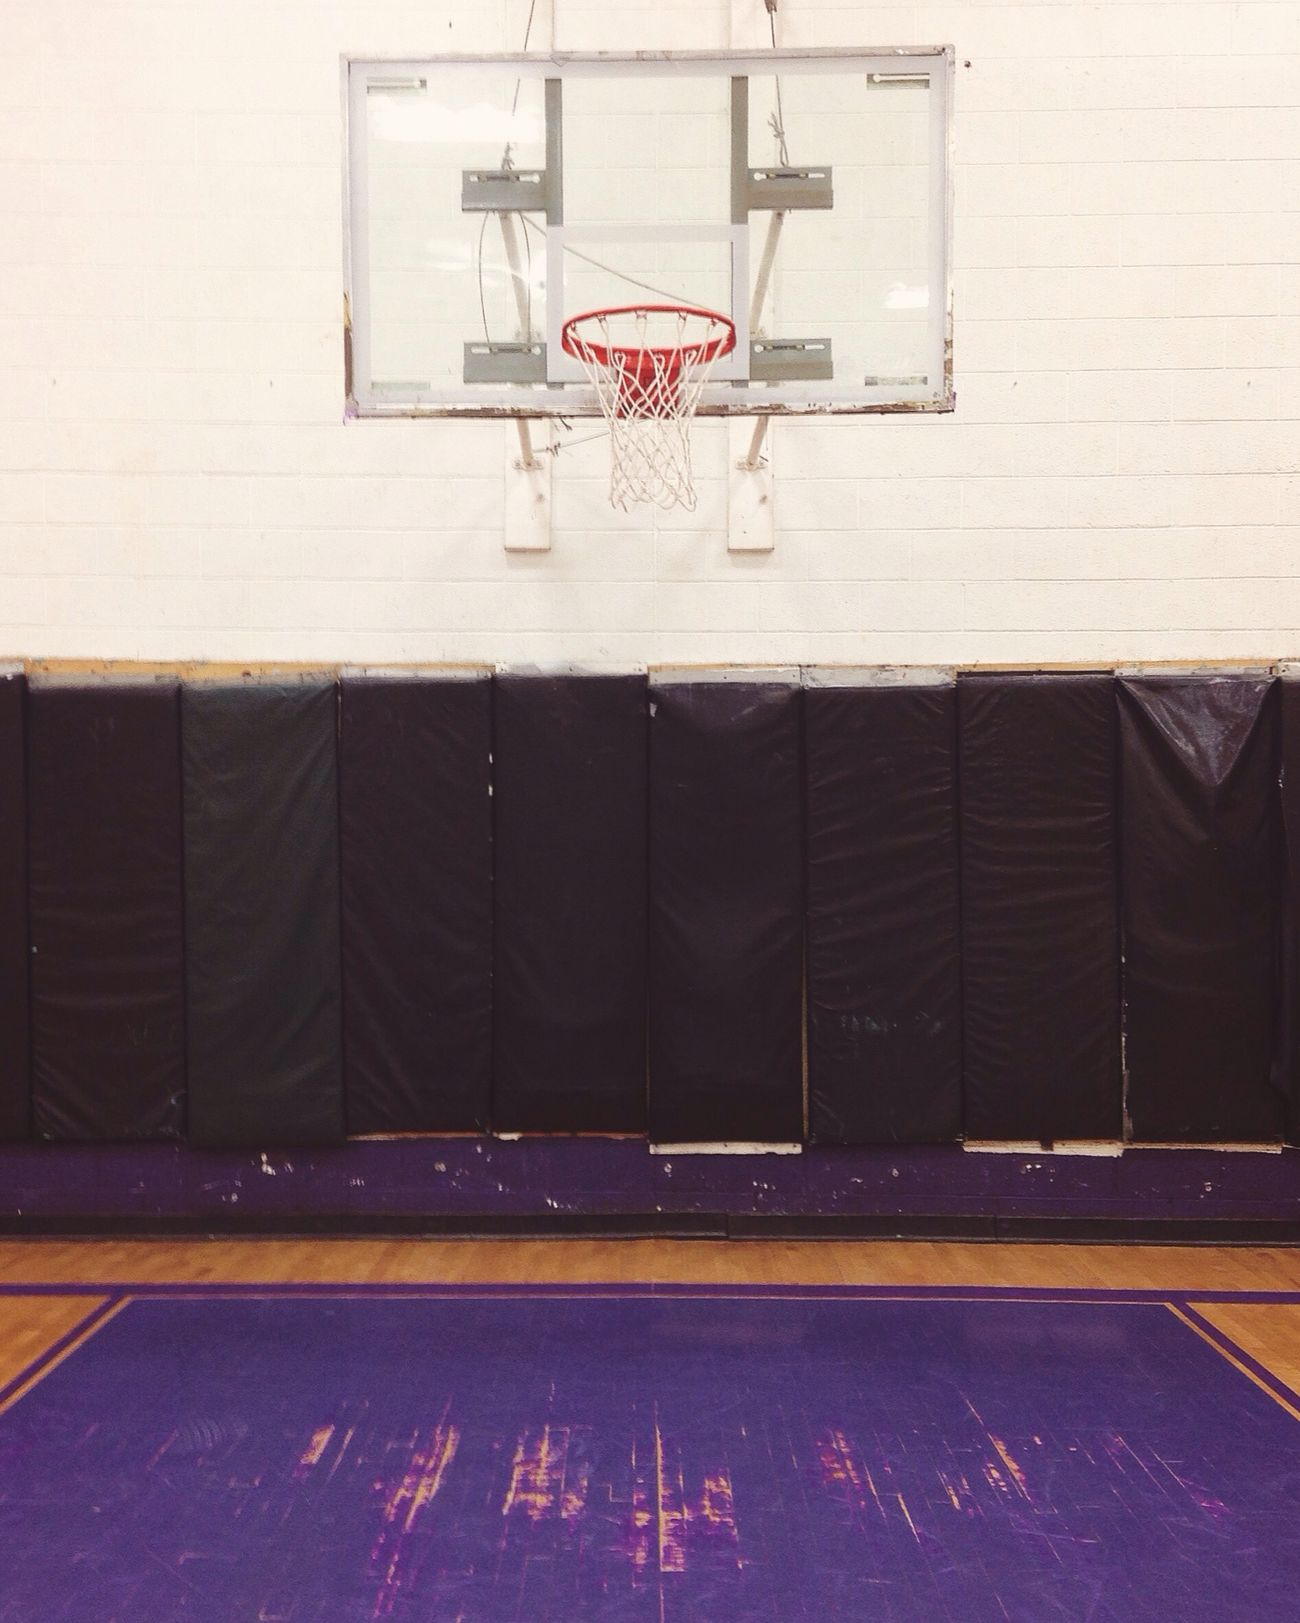 Pretty much where I spent my weekend. Basketball Rezball